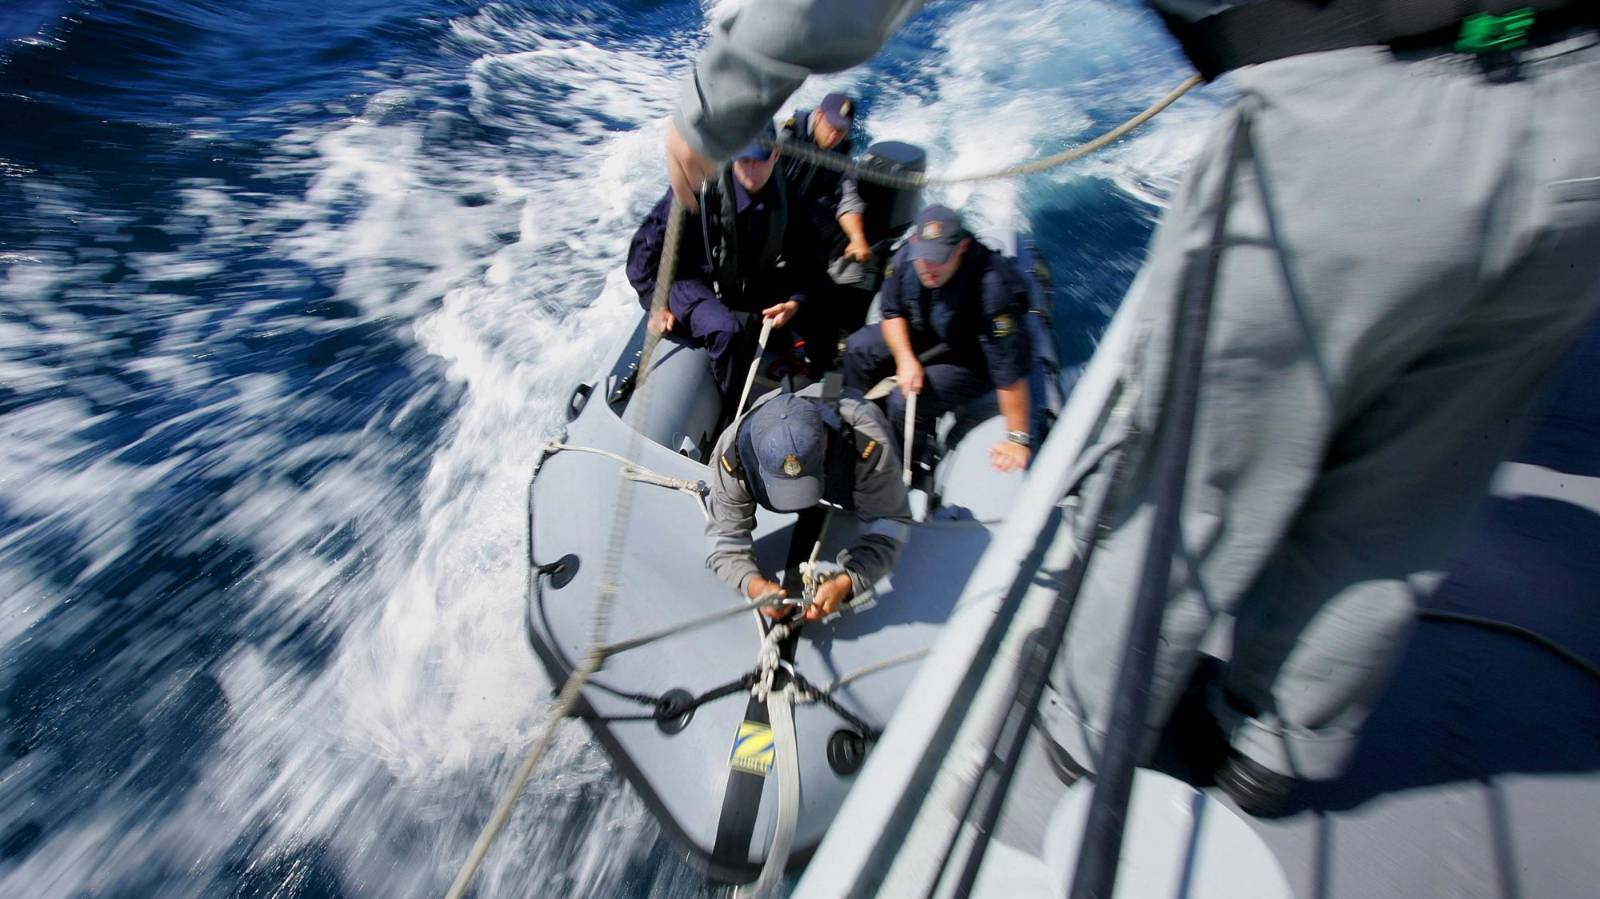 Sailor seriously injured when dragged through water as 'punishment'